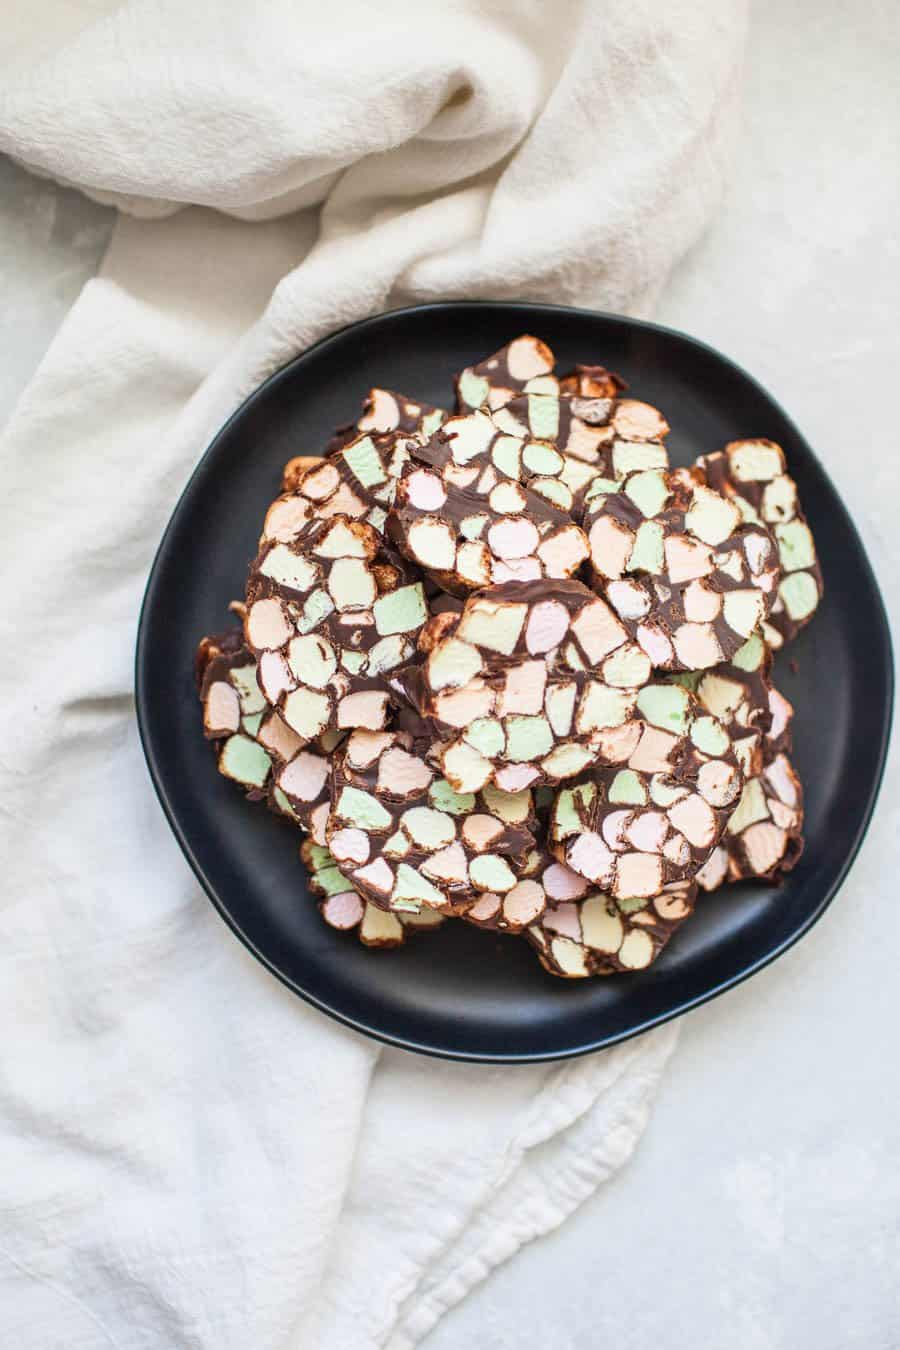 Dark gray stone plate with one inch thick stained glass window cookies, bright colored mini marshmallows and covered in chocolate.